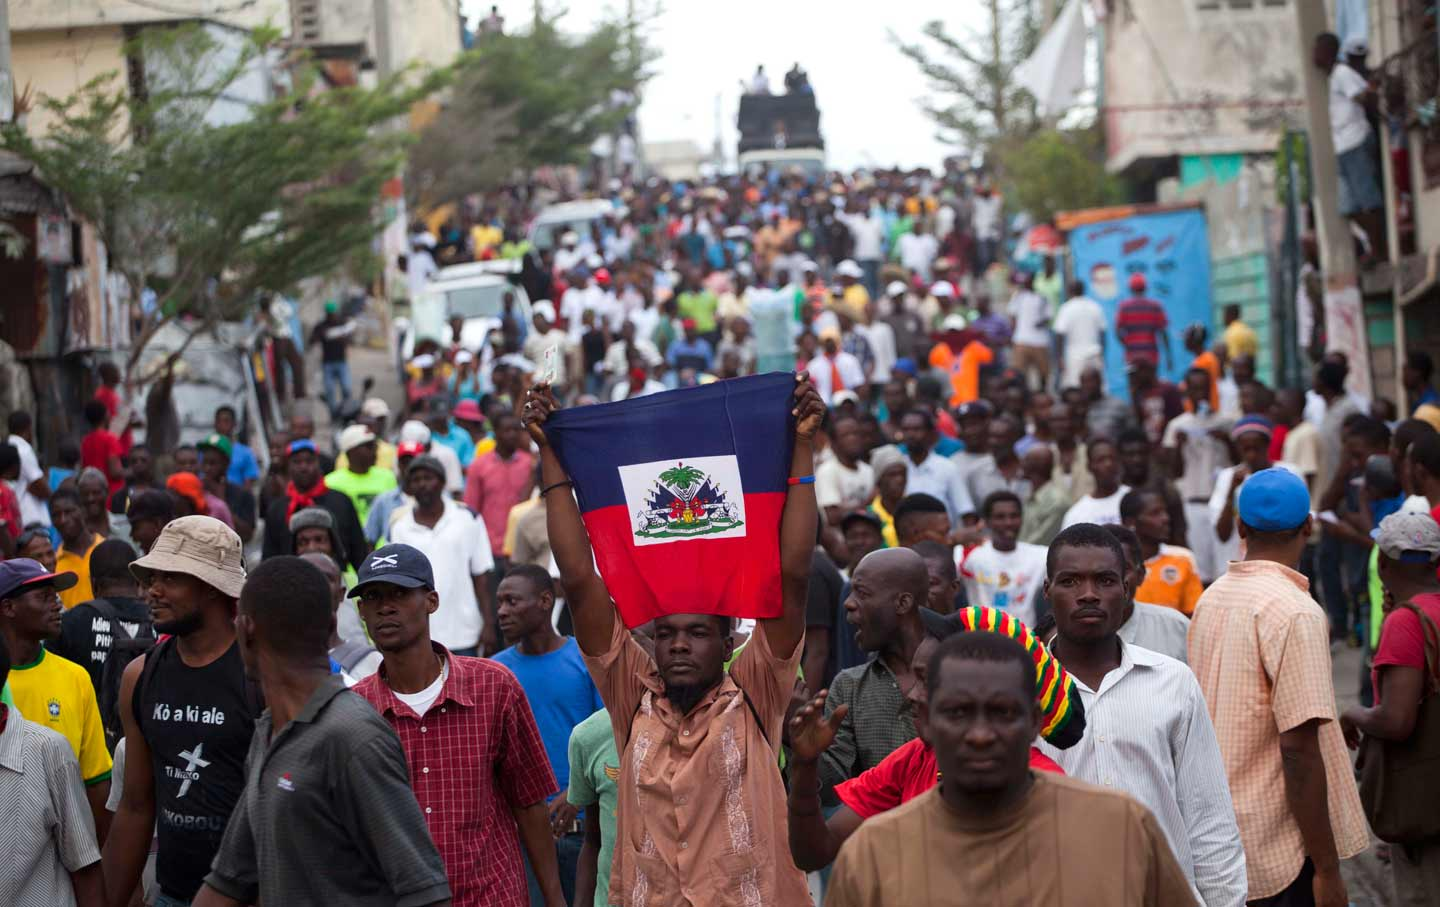 haiti_election_demonstrators_ap_img